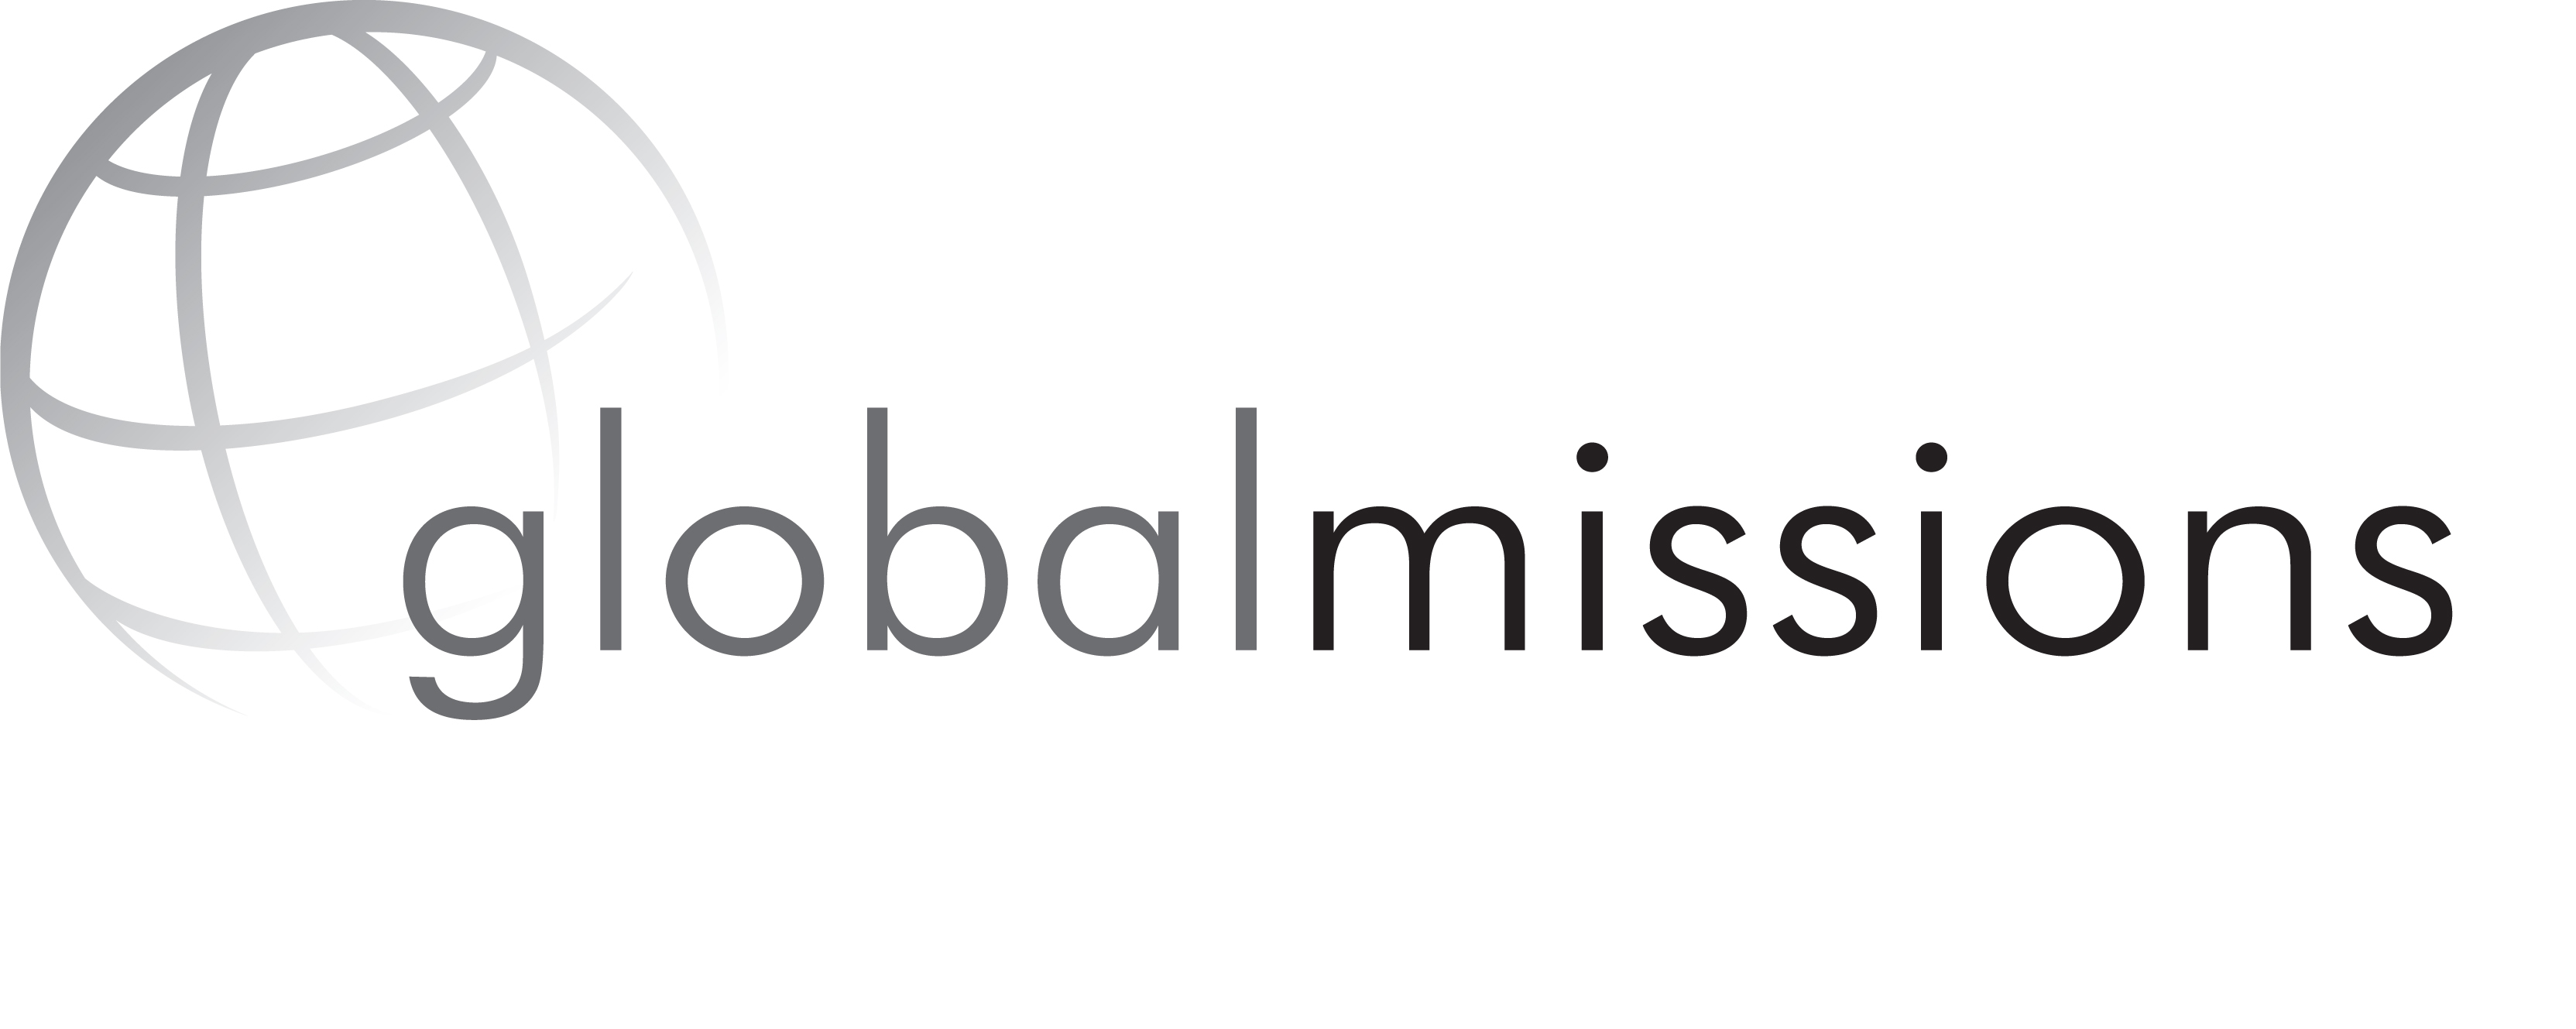 global-missions-logo-primary-gray